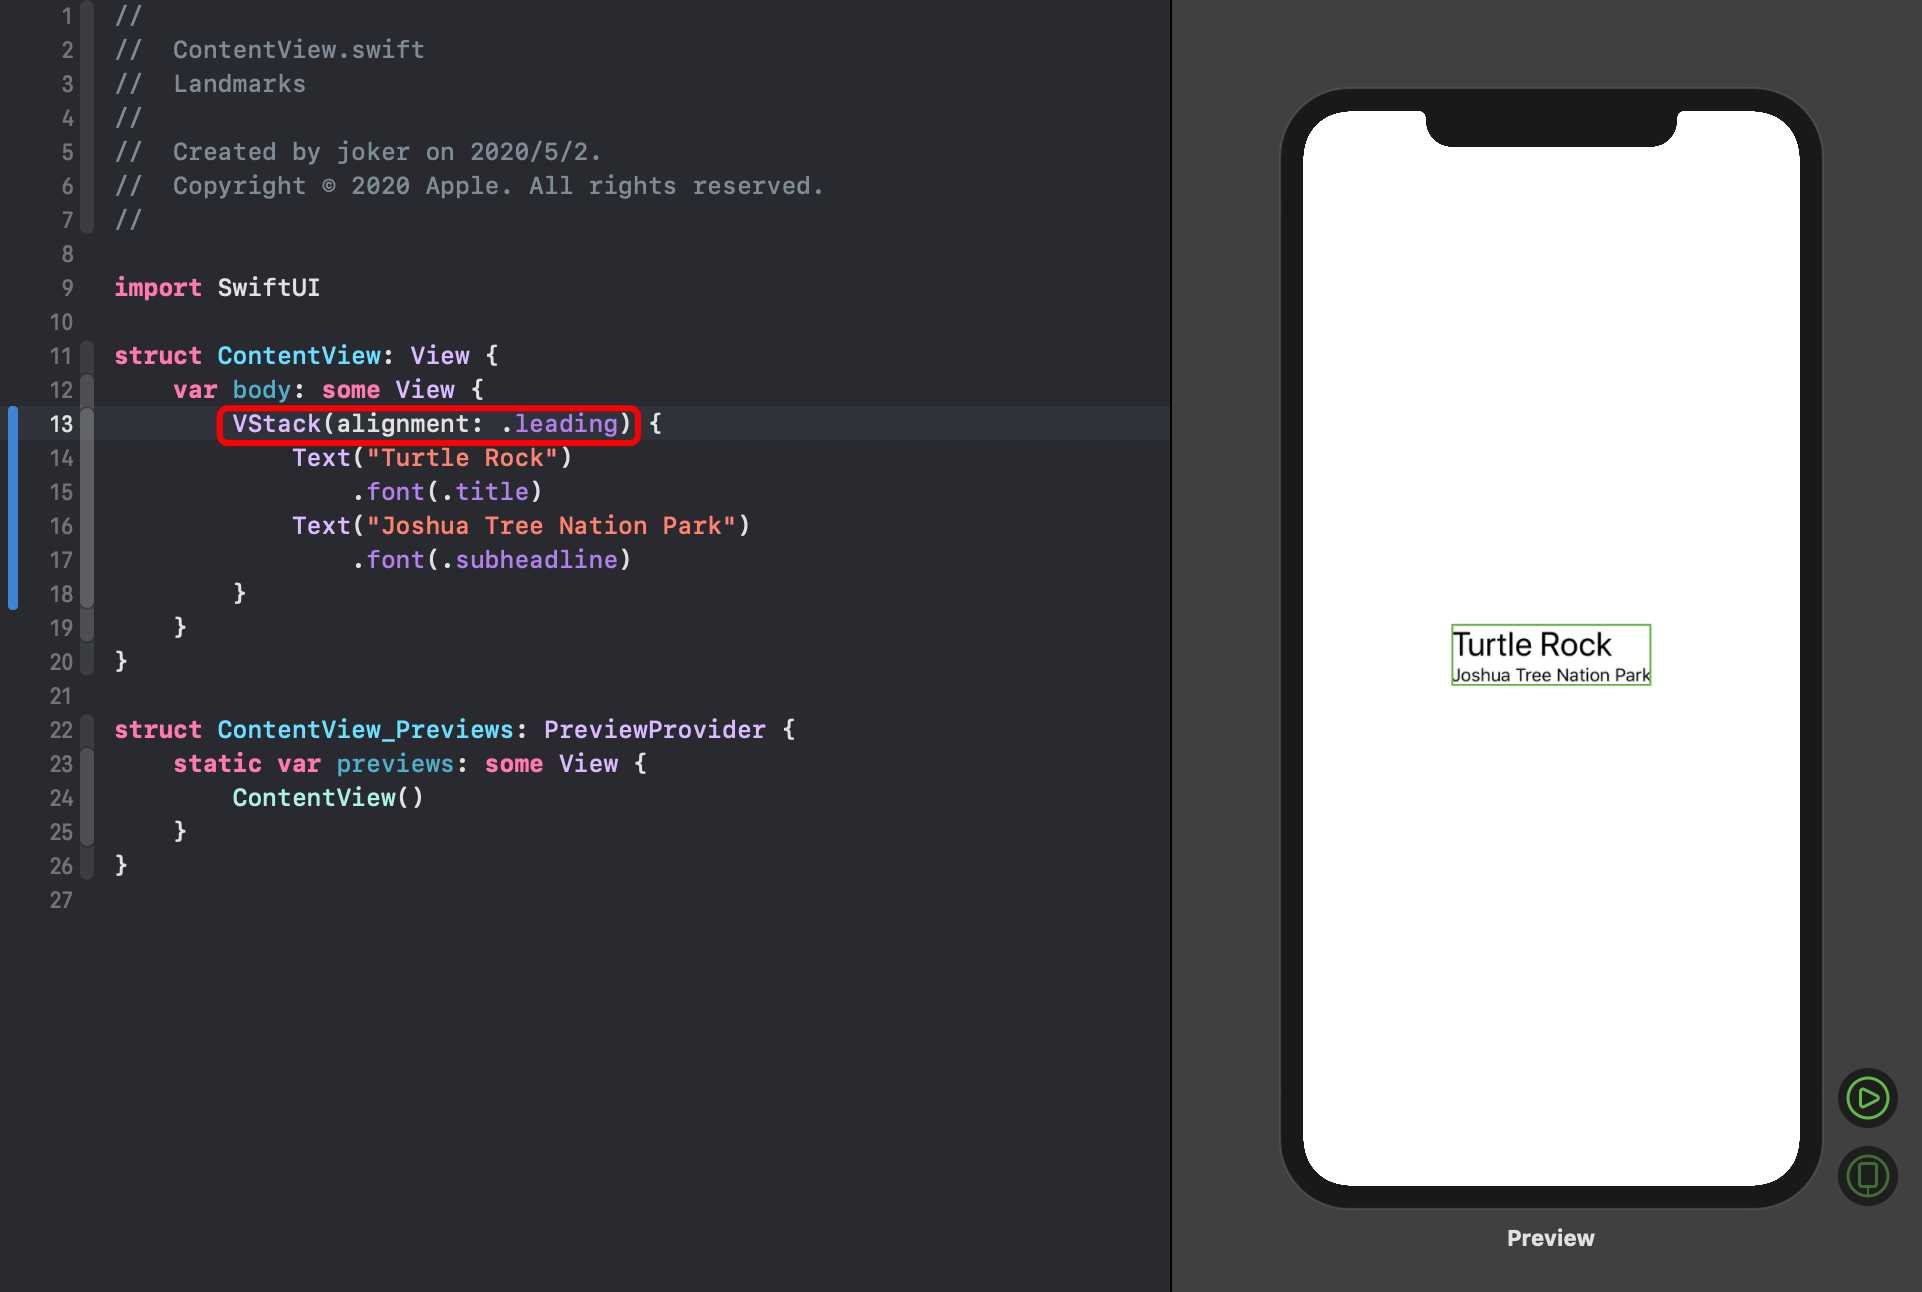 swiftui vstack leadng alignment